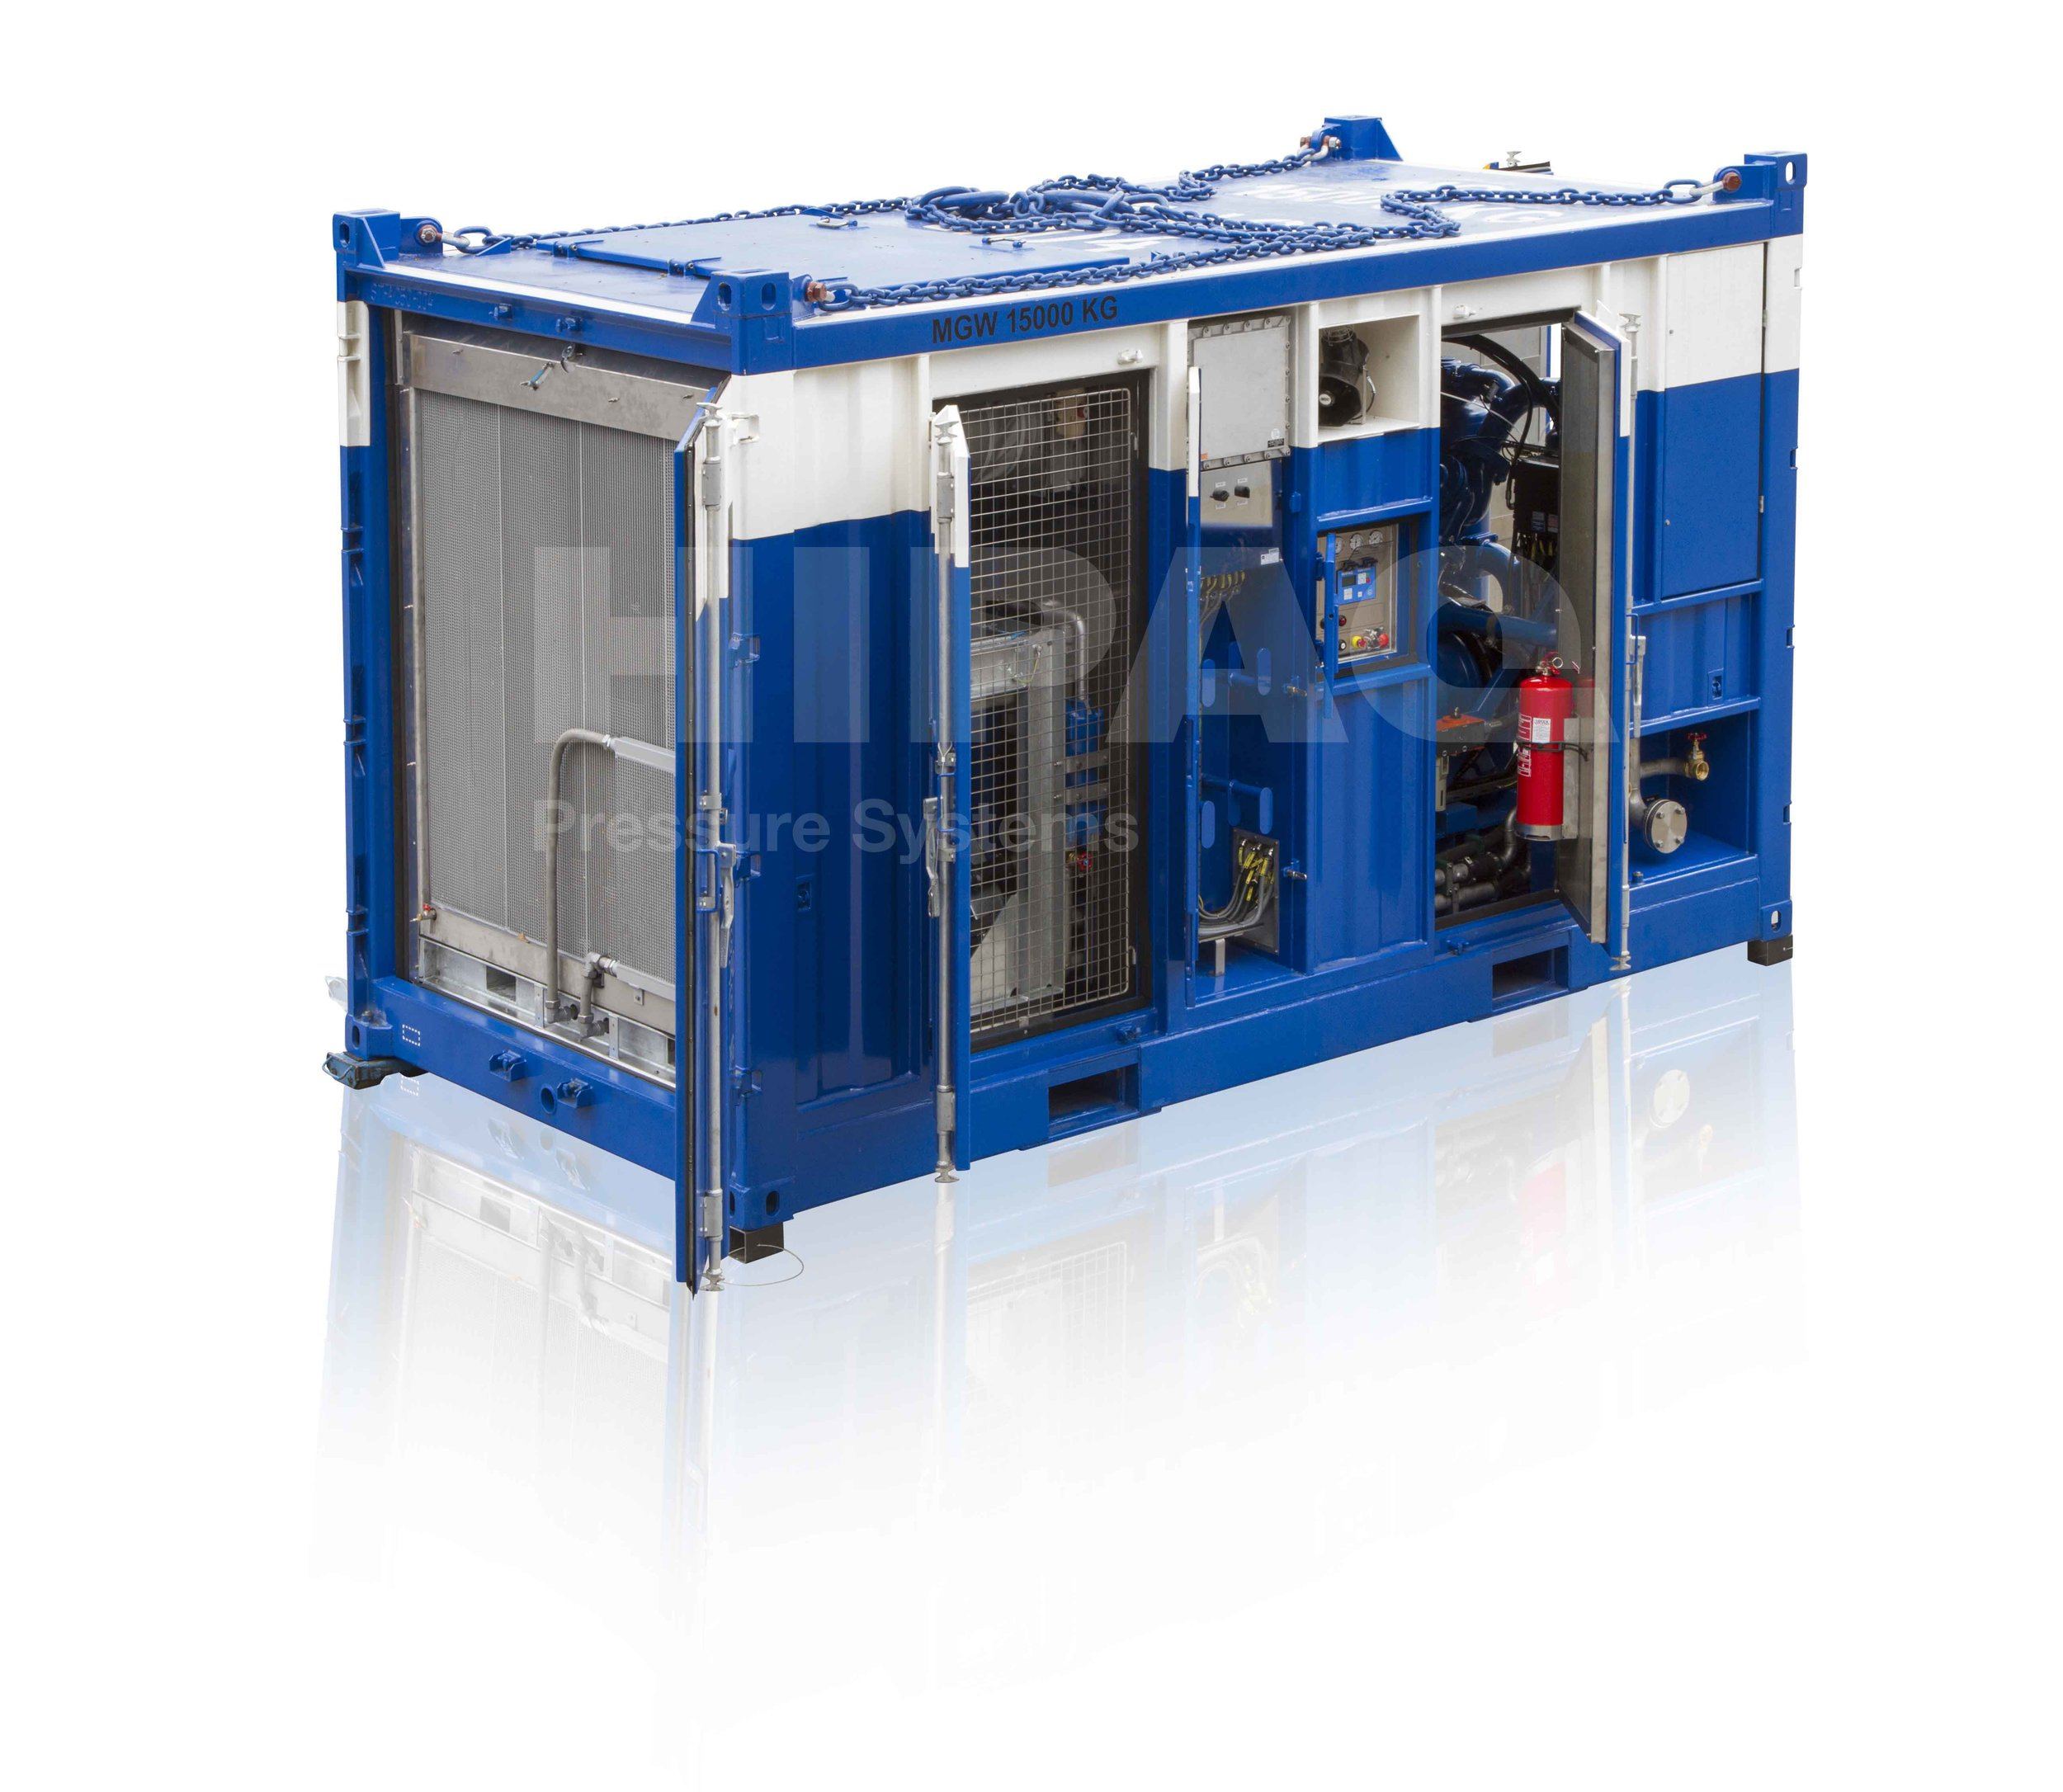 Explosion Proof Containerized Diesel Air Compressor